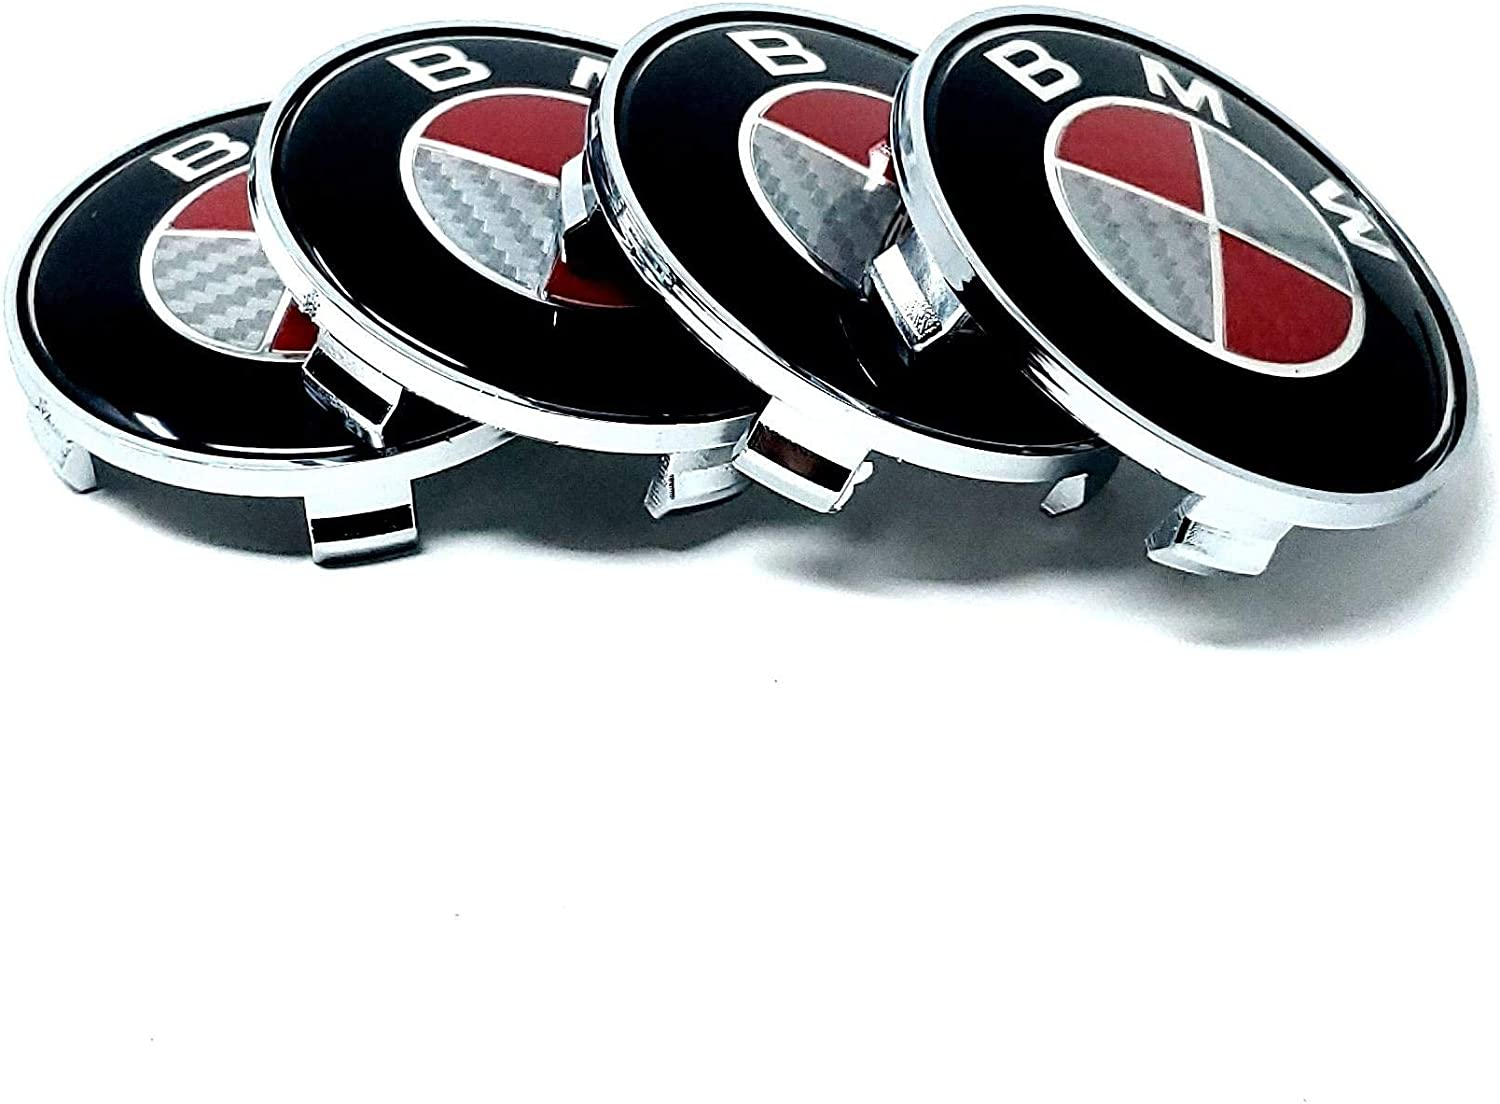 BM M POWER PERFORMANCE Emblem Badge Stick Double Sided Tape Trunk Side Rear Front Logo Letters Emblems fit for Universal GR8 82MM 74MM RED CARBON PAIR